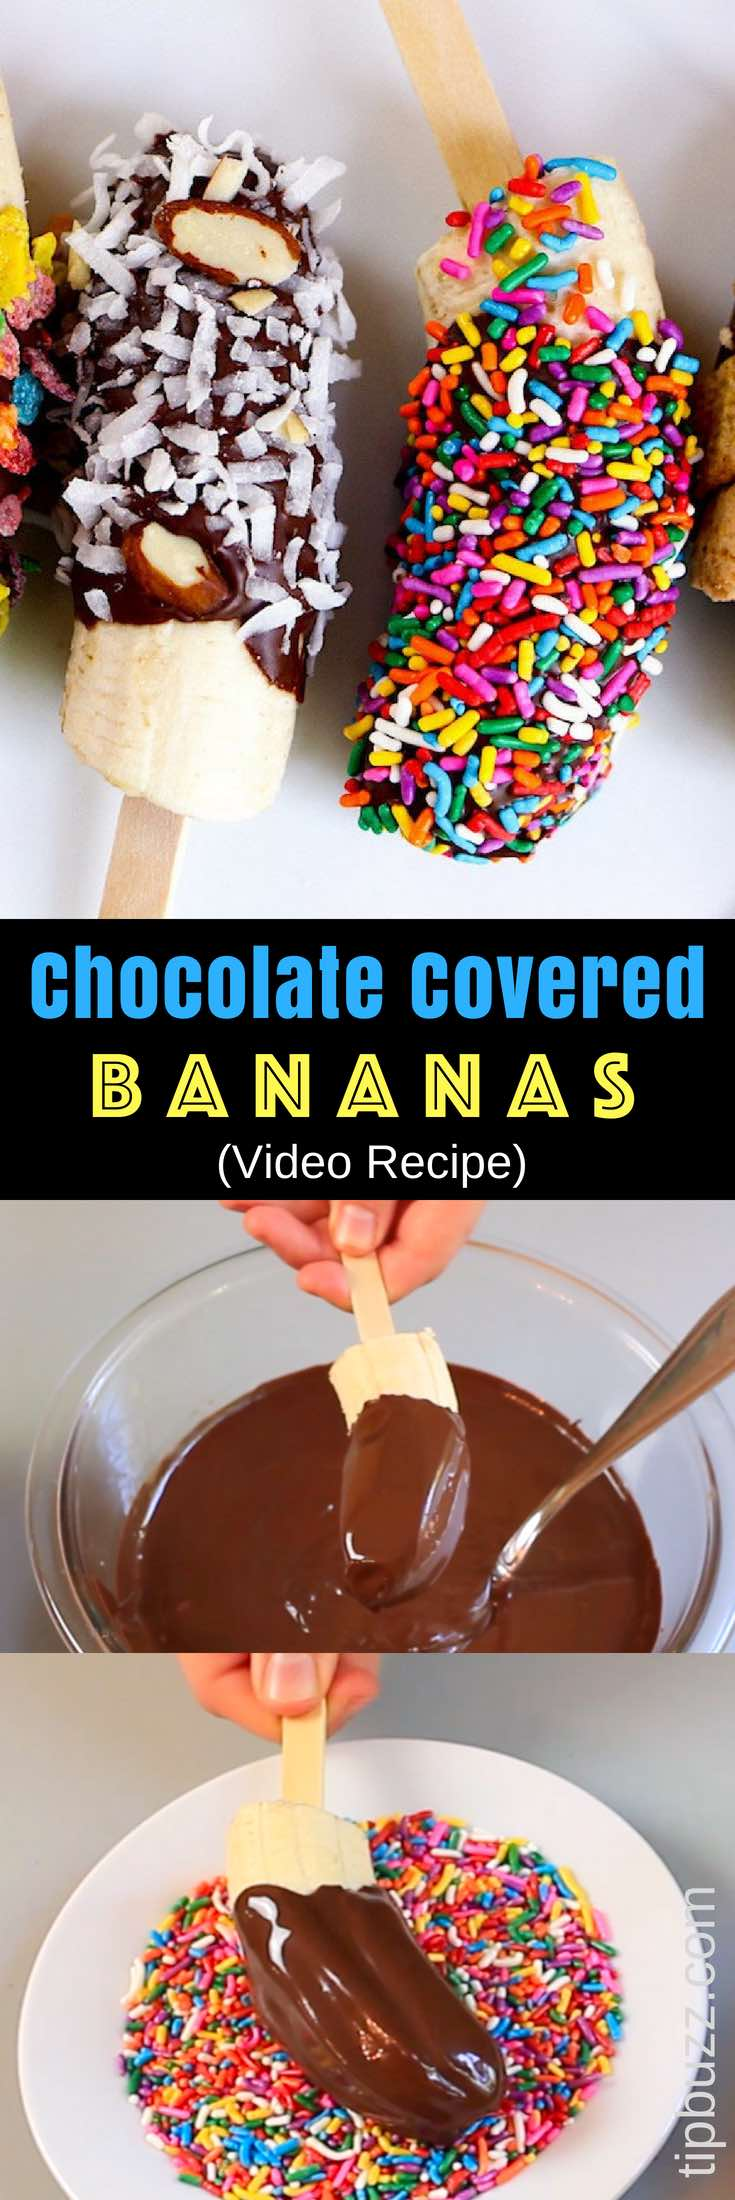 Chocolate Covered Frozen Bananas – The easiest snacks ever! Just 3 Ingredients: banana, chocolate and coconut oil; plus whatever toppings you like. We used M&M crushed colored, fruity pebble cereal, cinnamon toast crunch and colored sprinkles, etc. They taste so good and look absolutely amazing! Quick and easy recipe. Kids friendly. Video recipe. | Tipbuzz.com #ChocolateCoveredBananas #ChocolateBananas #ChocolateCoveredFrozenBananas